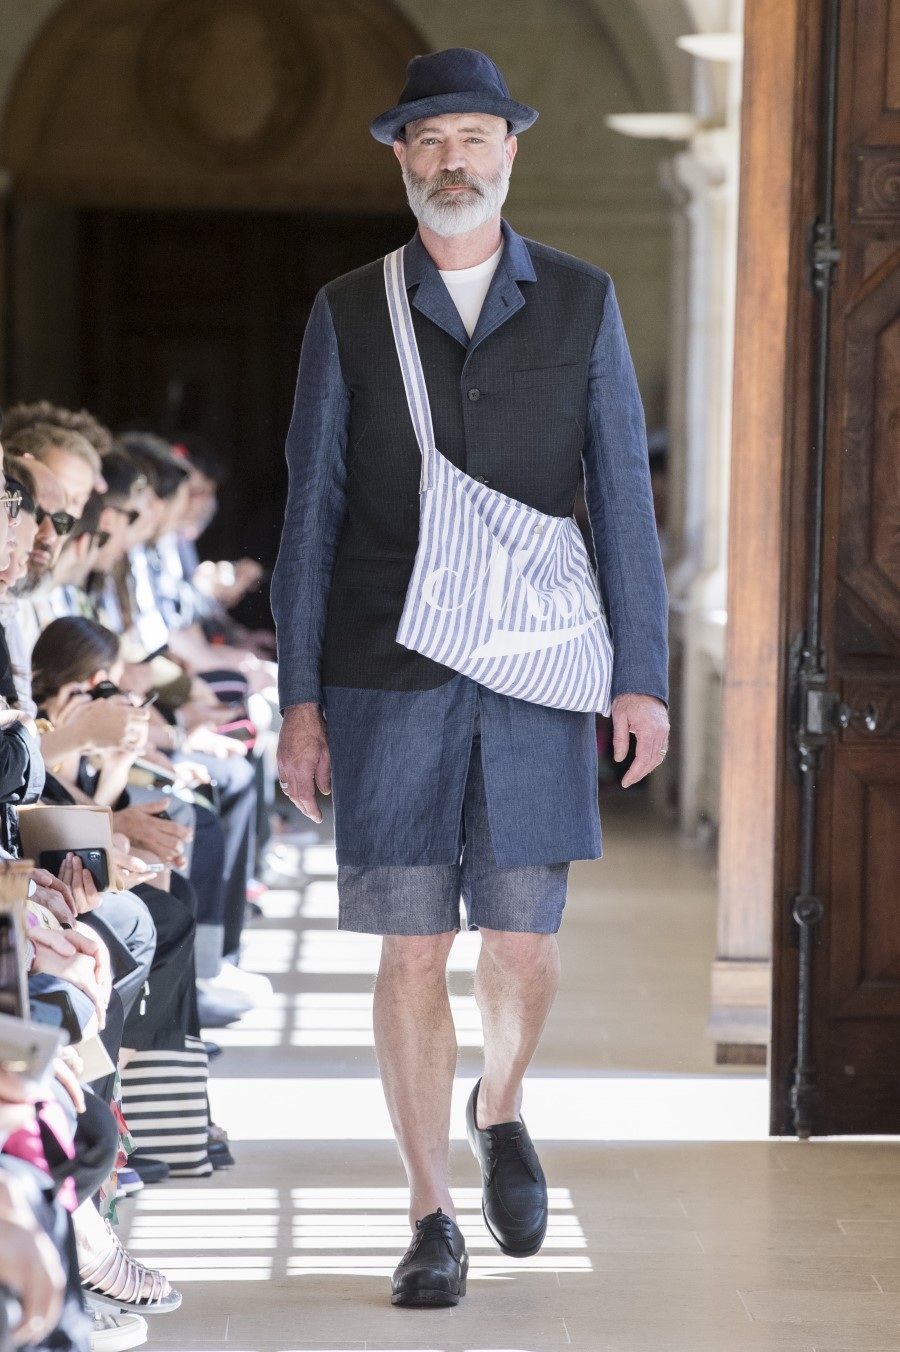 Junya Watanabe MAN - Printemps-Été 2020 - Paris Fashion Week